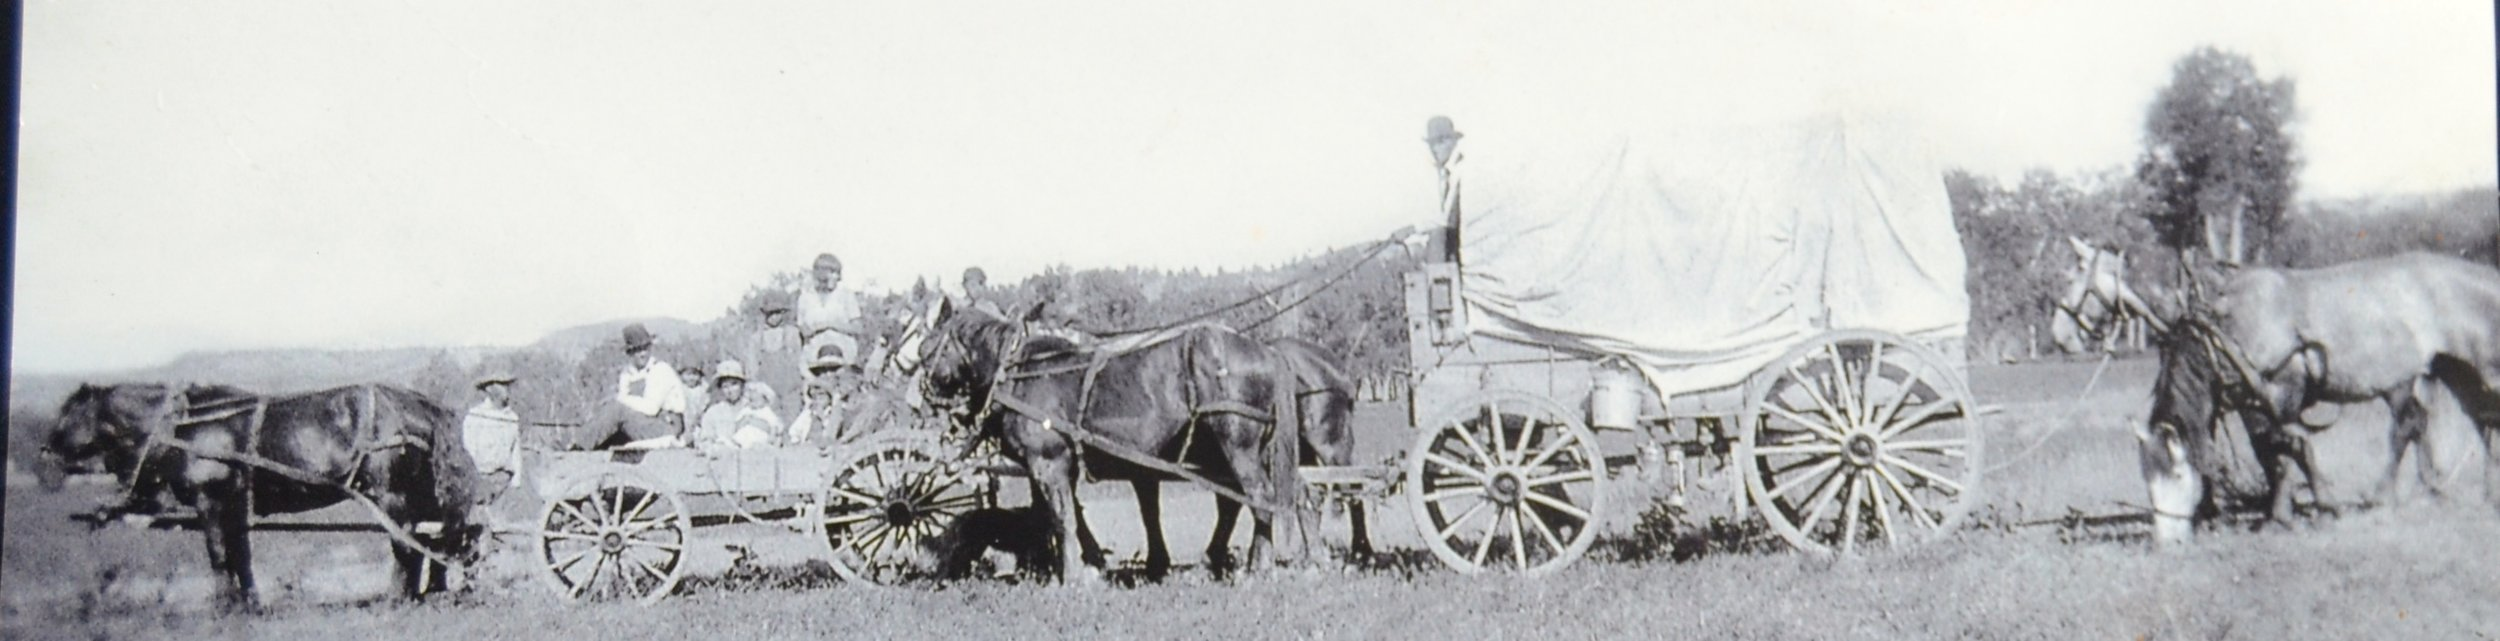 MM Matovich Ranch pioneers